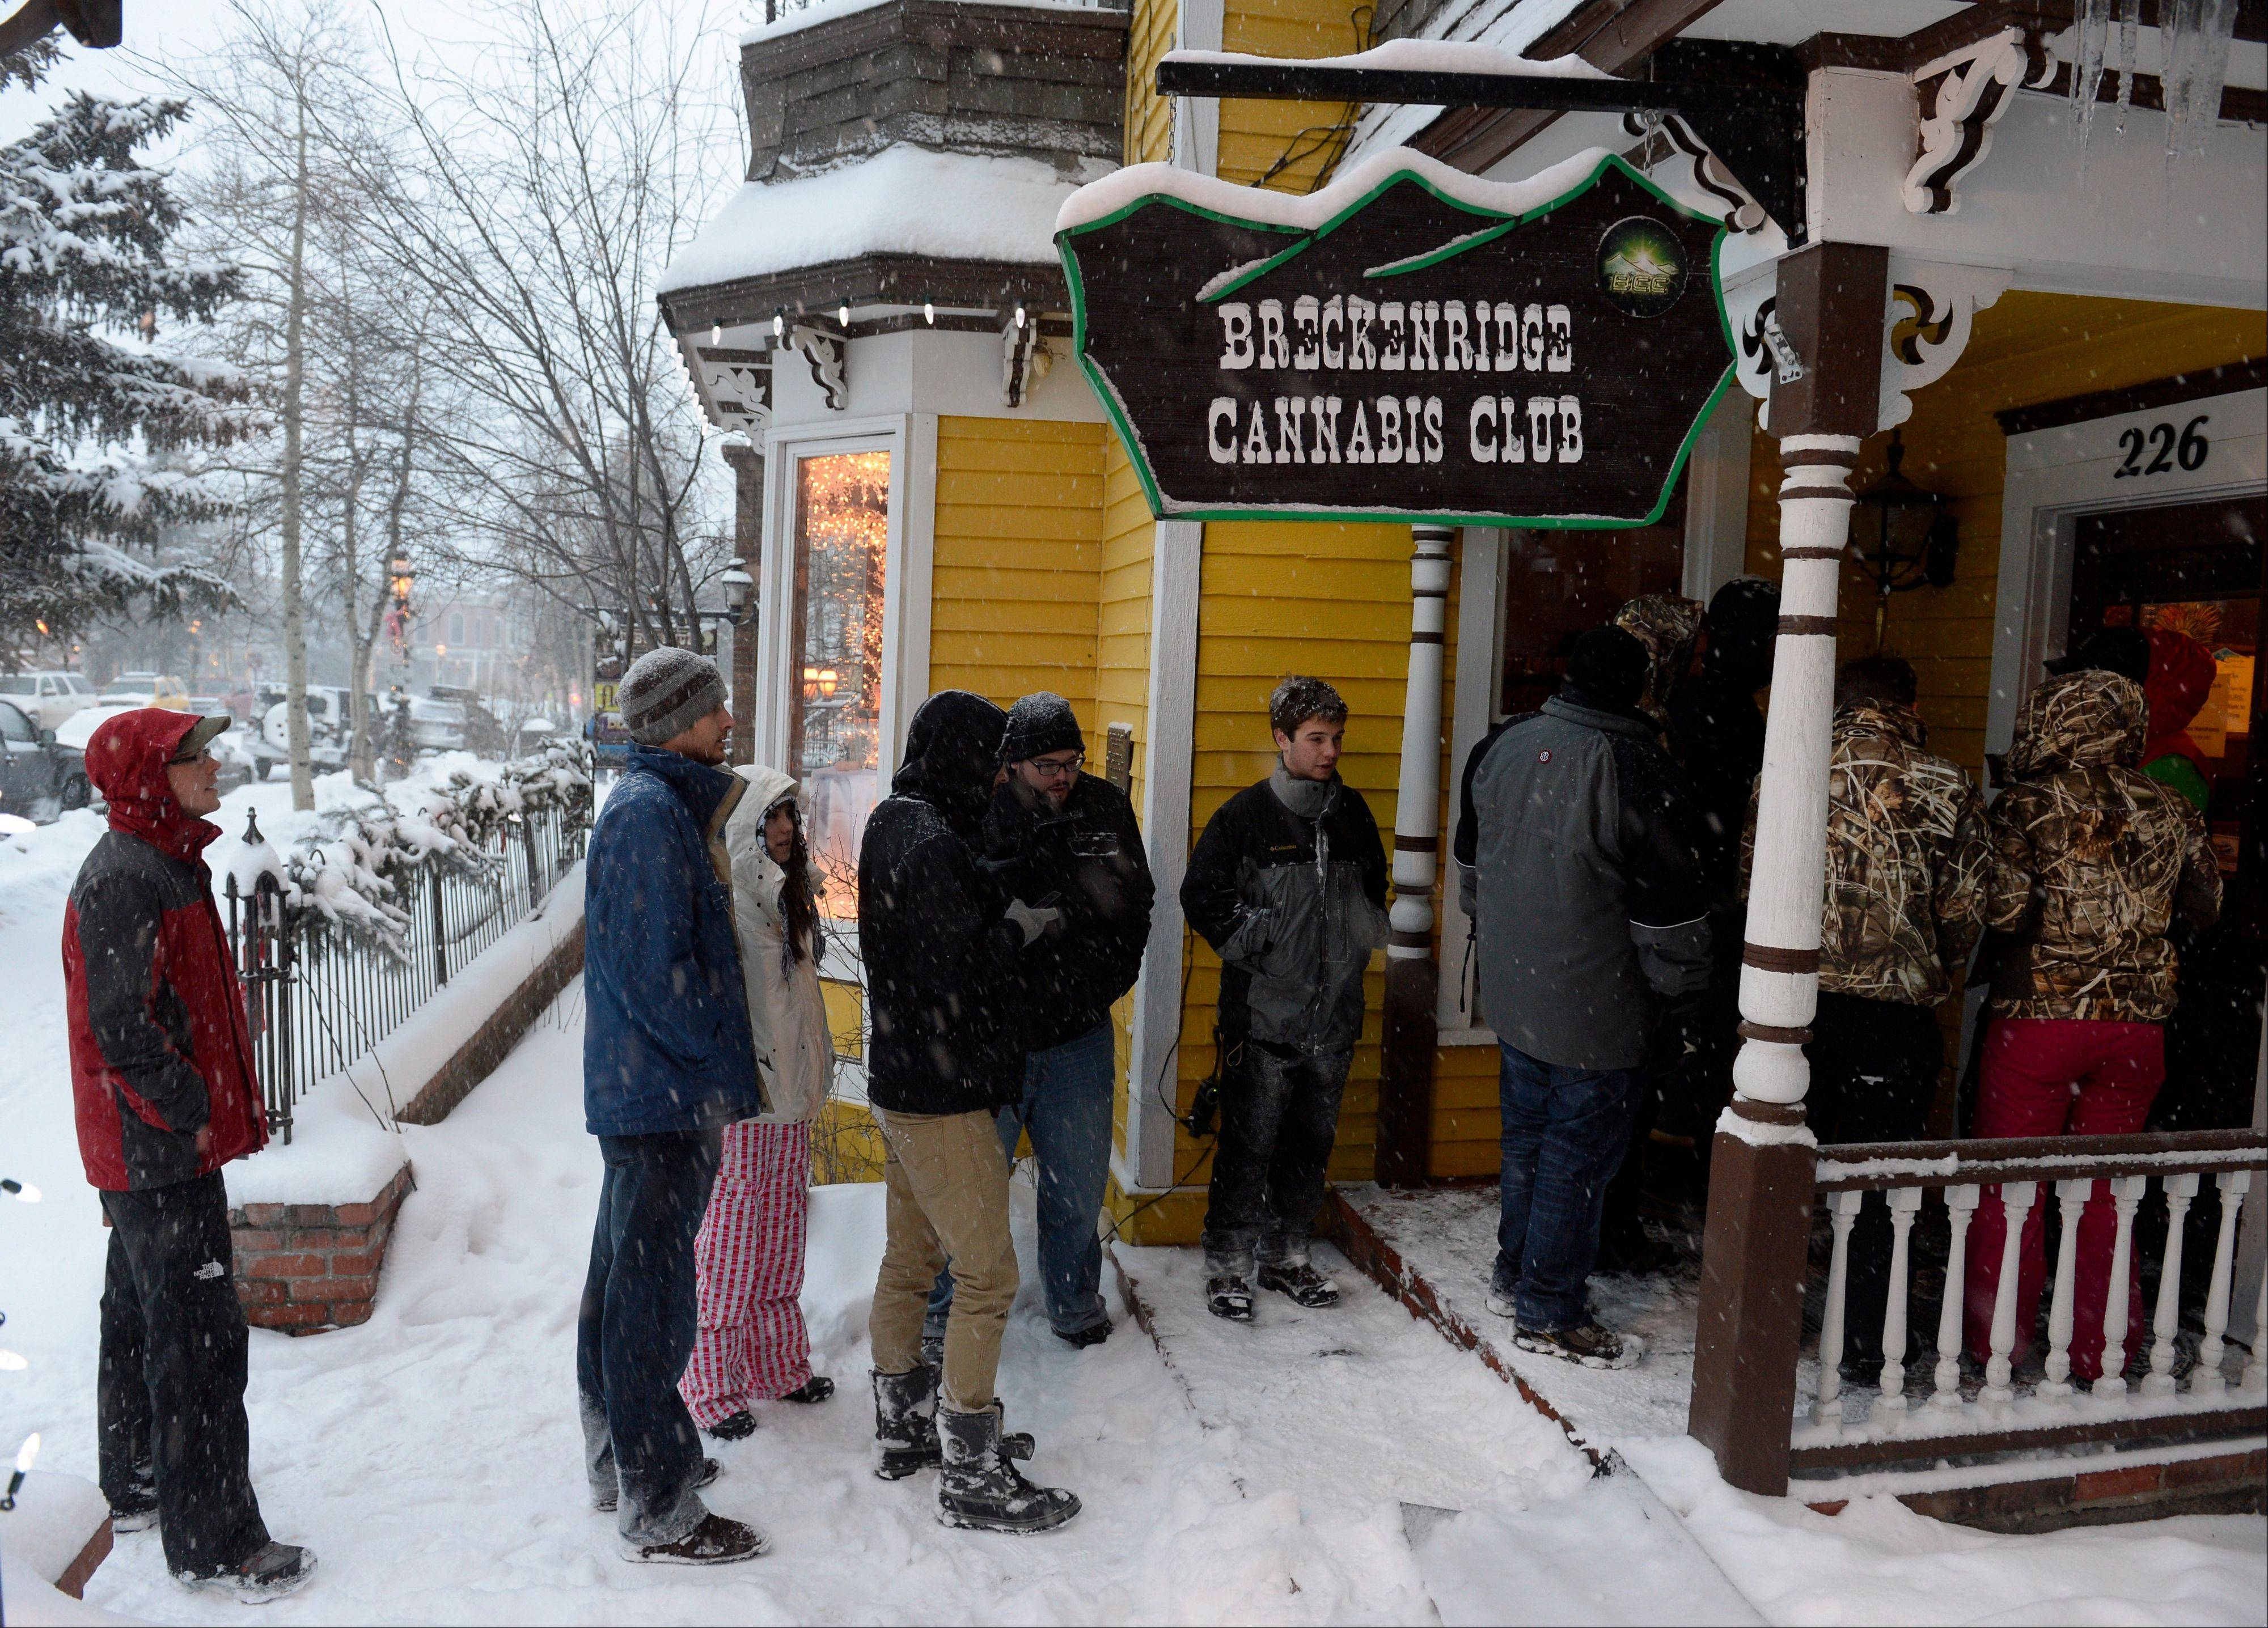 A line waits outside the Cannabis Club on Main Street in downtown Breckenridge, Colo., for an 8 a.m. opening of the store, Wednesday.